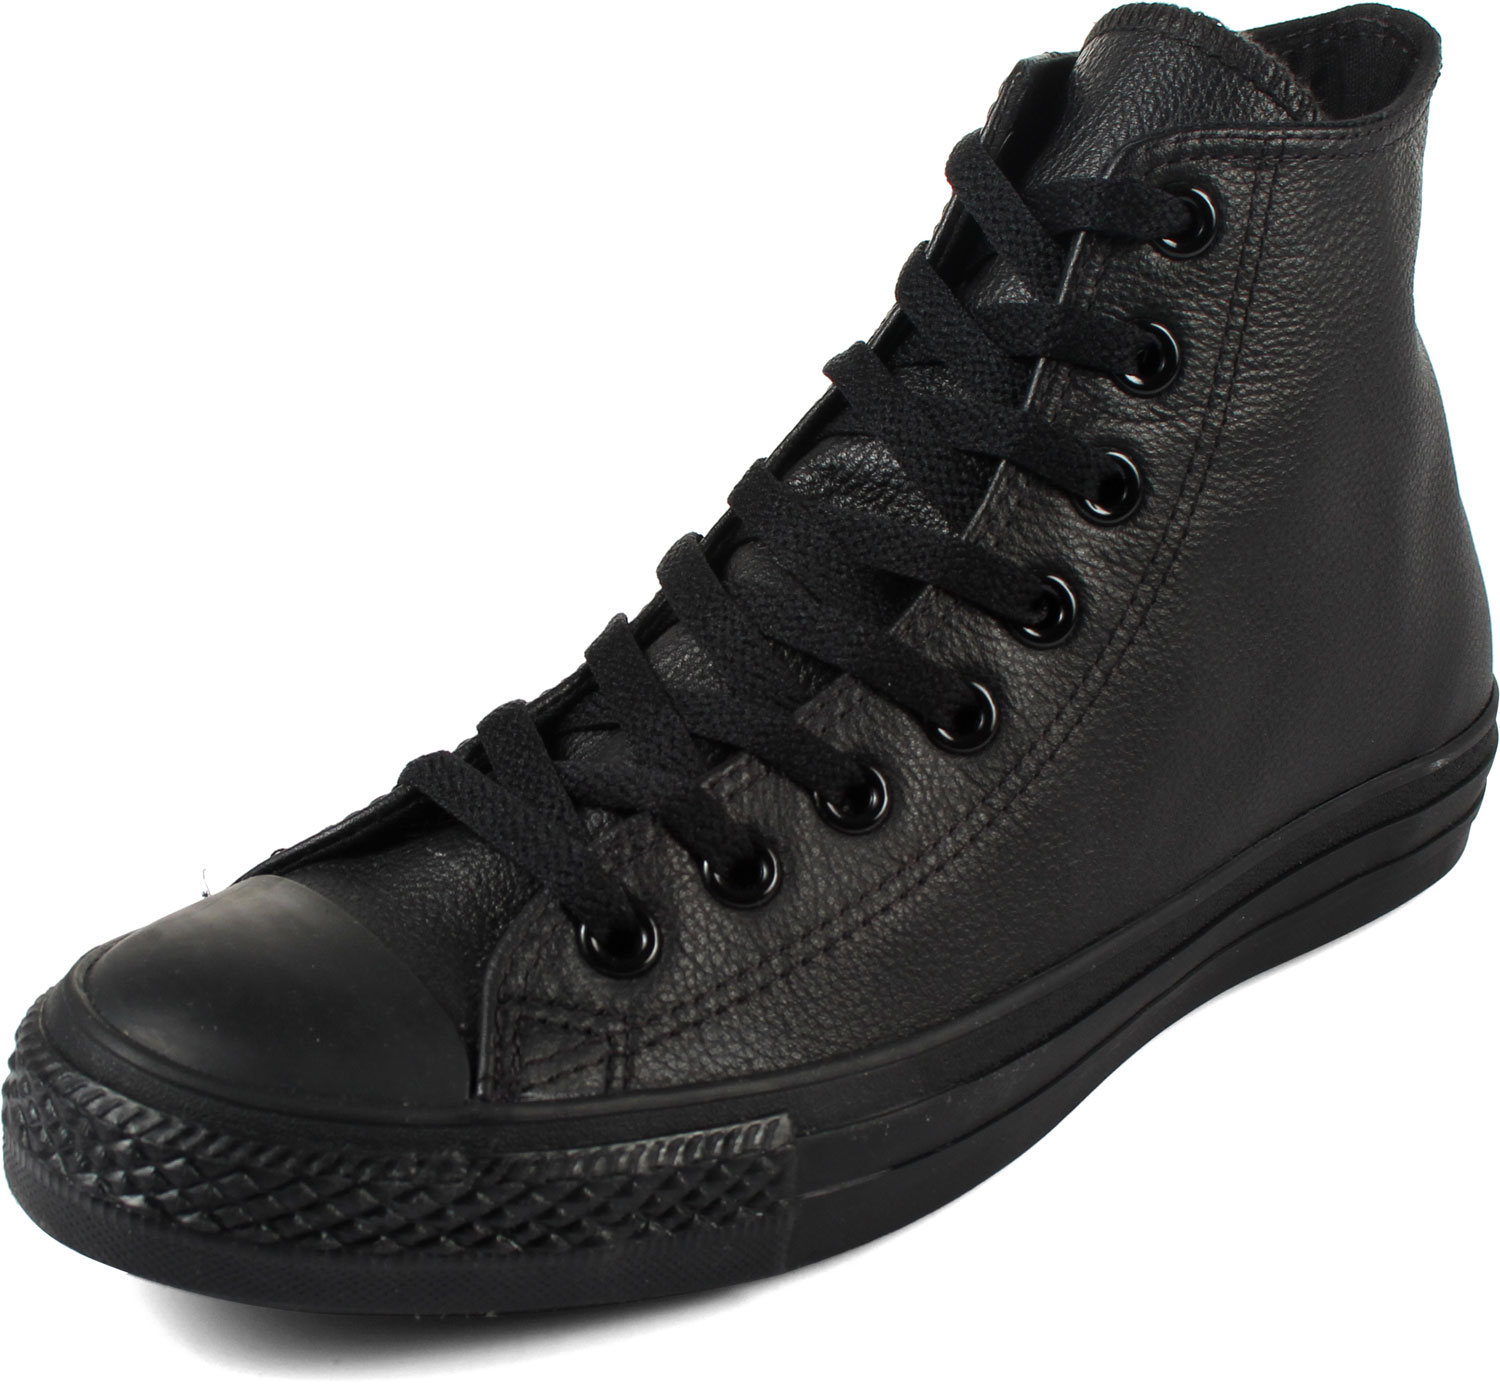 black leather converse converse chuck taylor all star shoes (1s581) hi black leather QCBRKMC